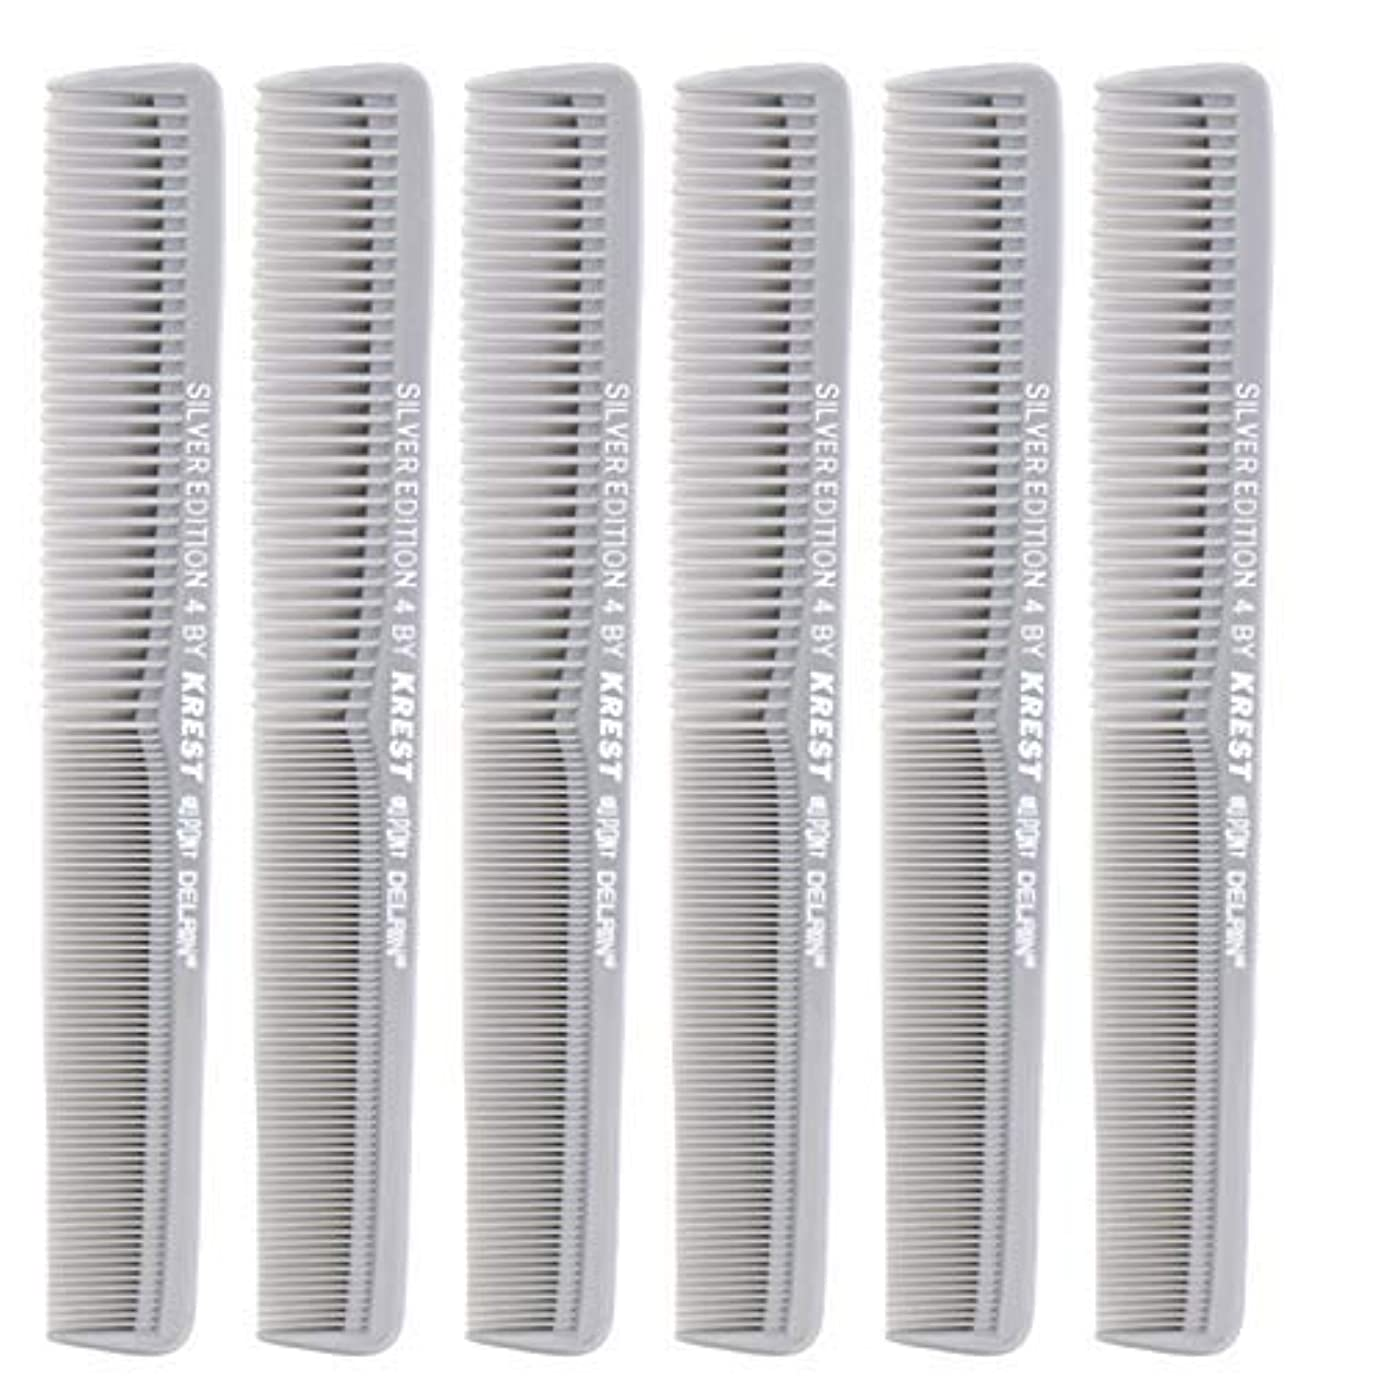 ベイビー終わらせる分注する7 In. Silver Edition Heat Resistant All Purpose Hair Comb Model #4 Krest Comb, [並行輸入品]